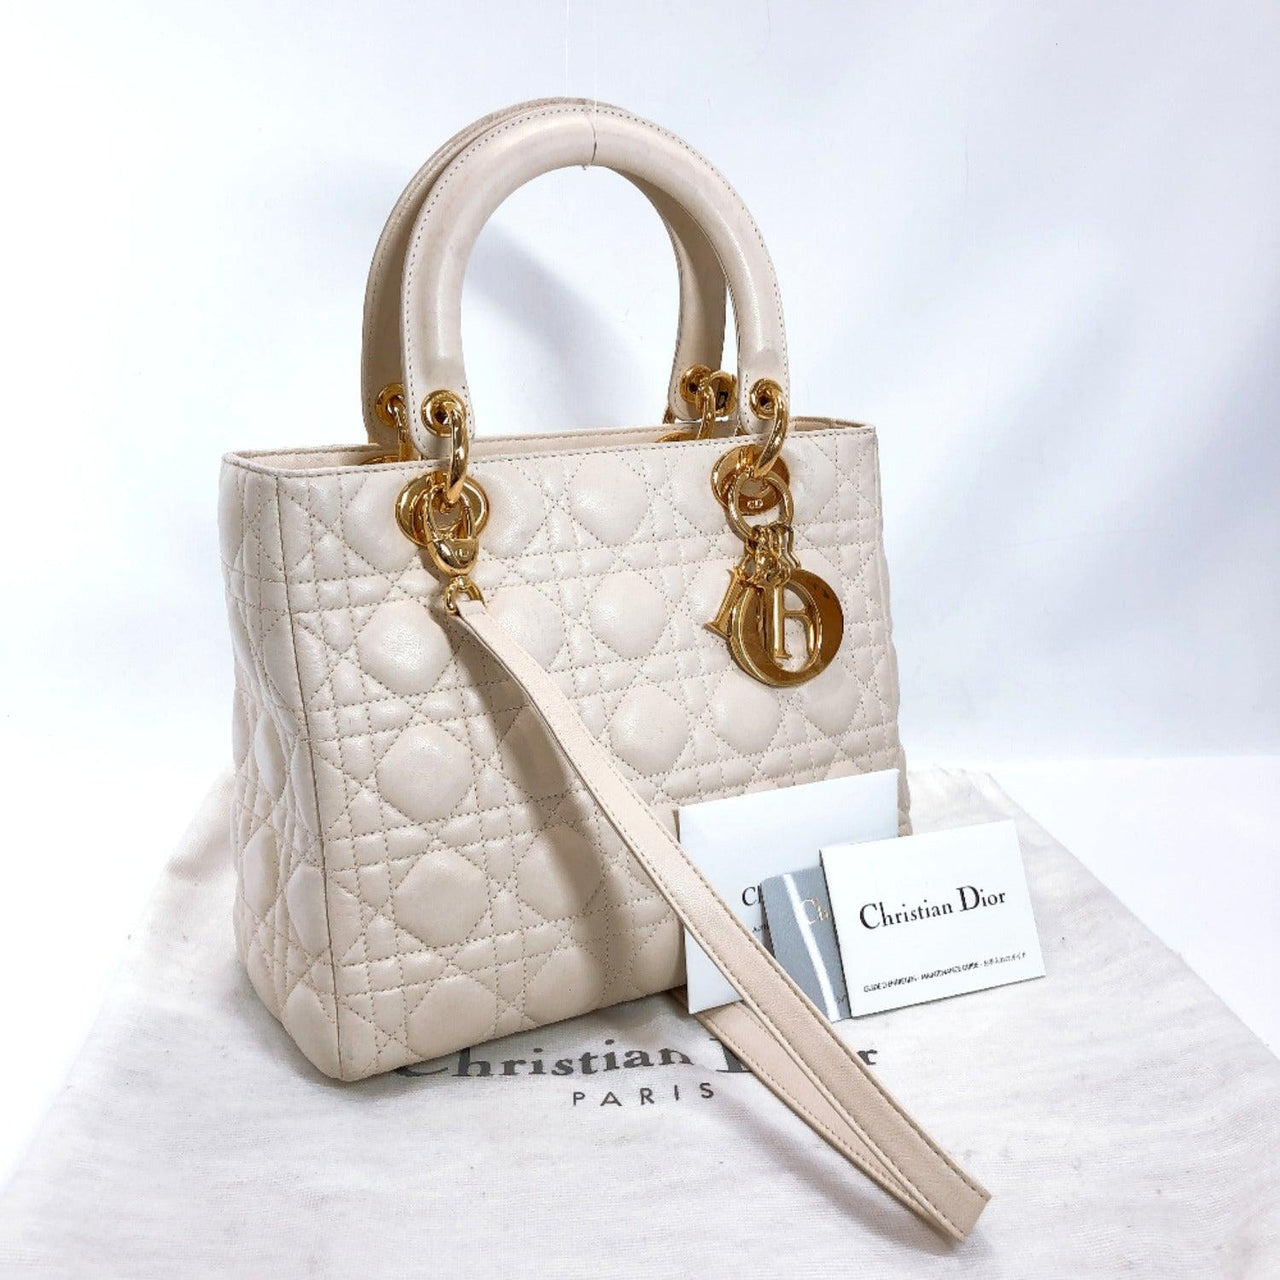 Christian Dior Handbag Lady Dior Canage leather off white Gold Hardware Women Used